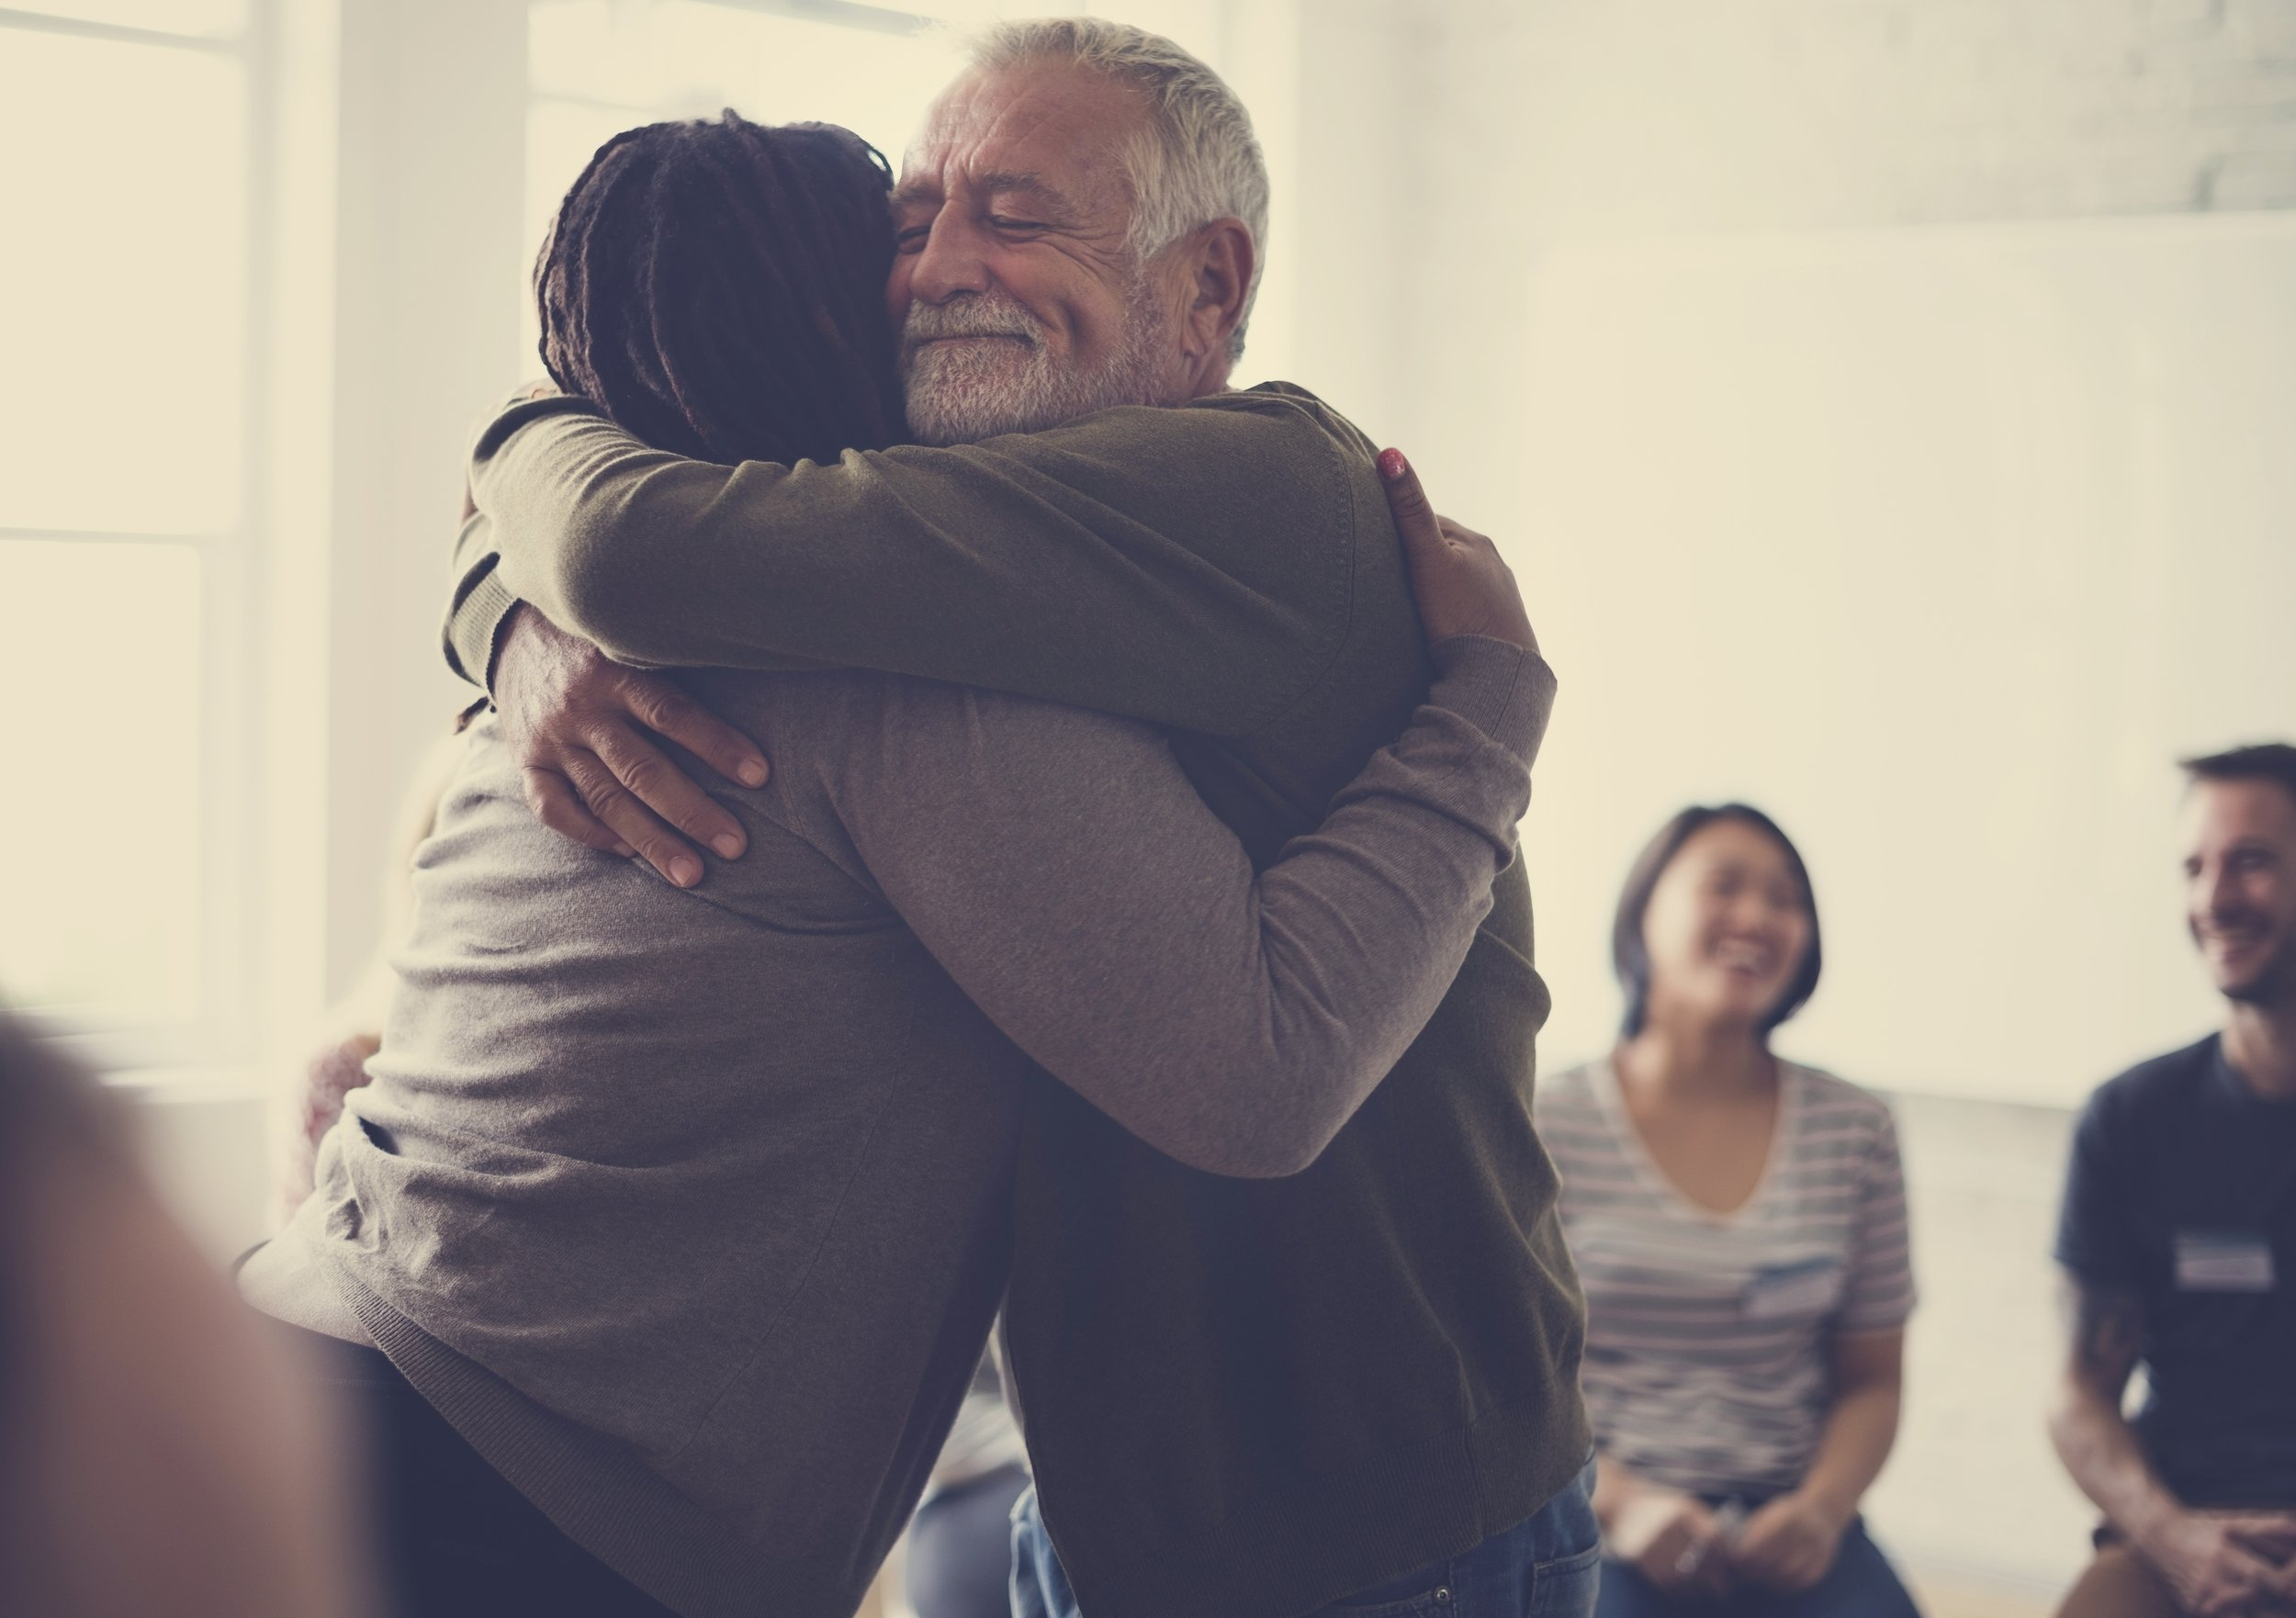 bigstock-Old-guy-consoling-a-woman-with-158607830.jpg